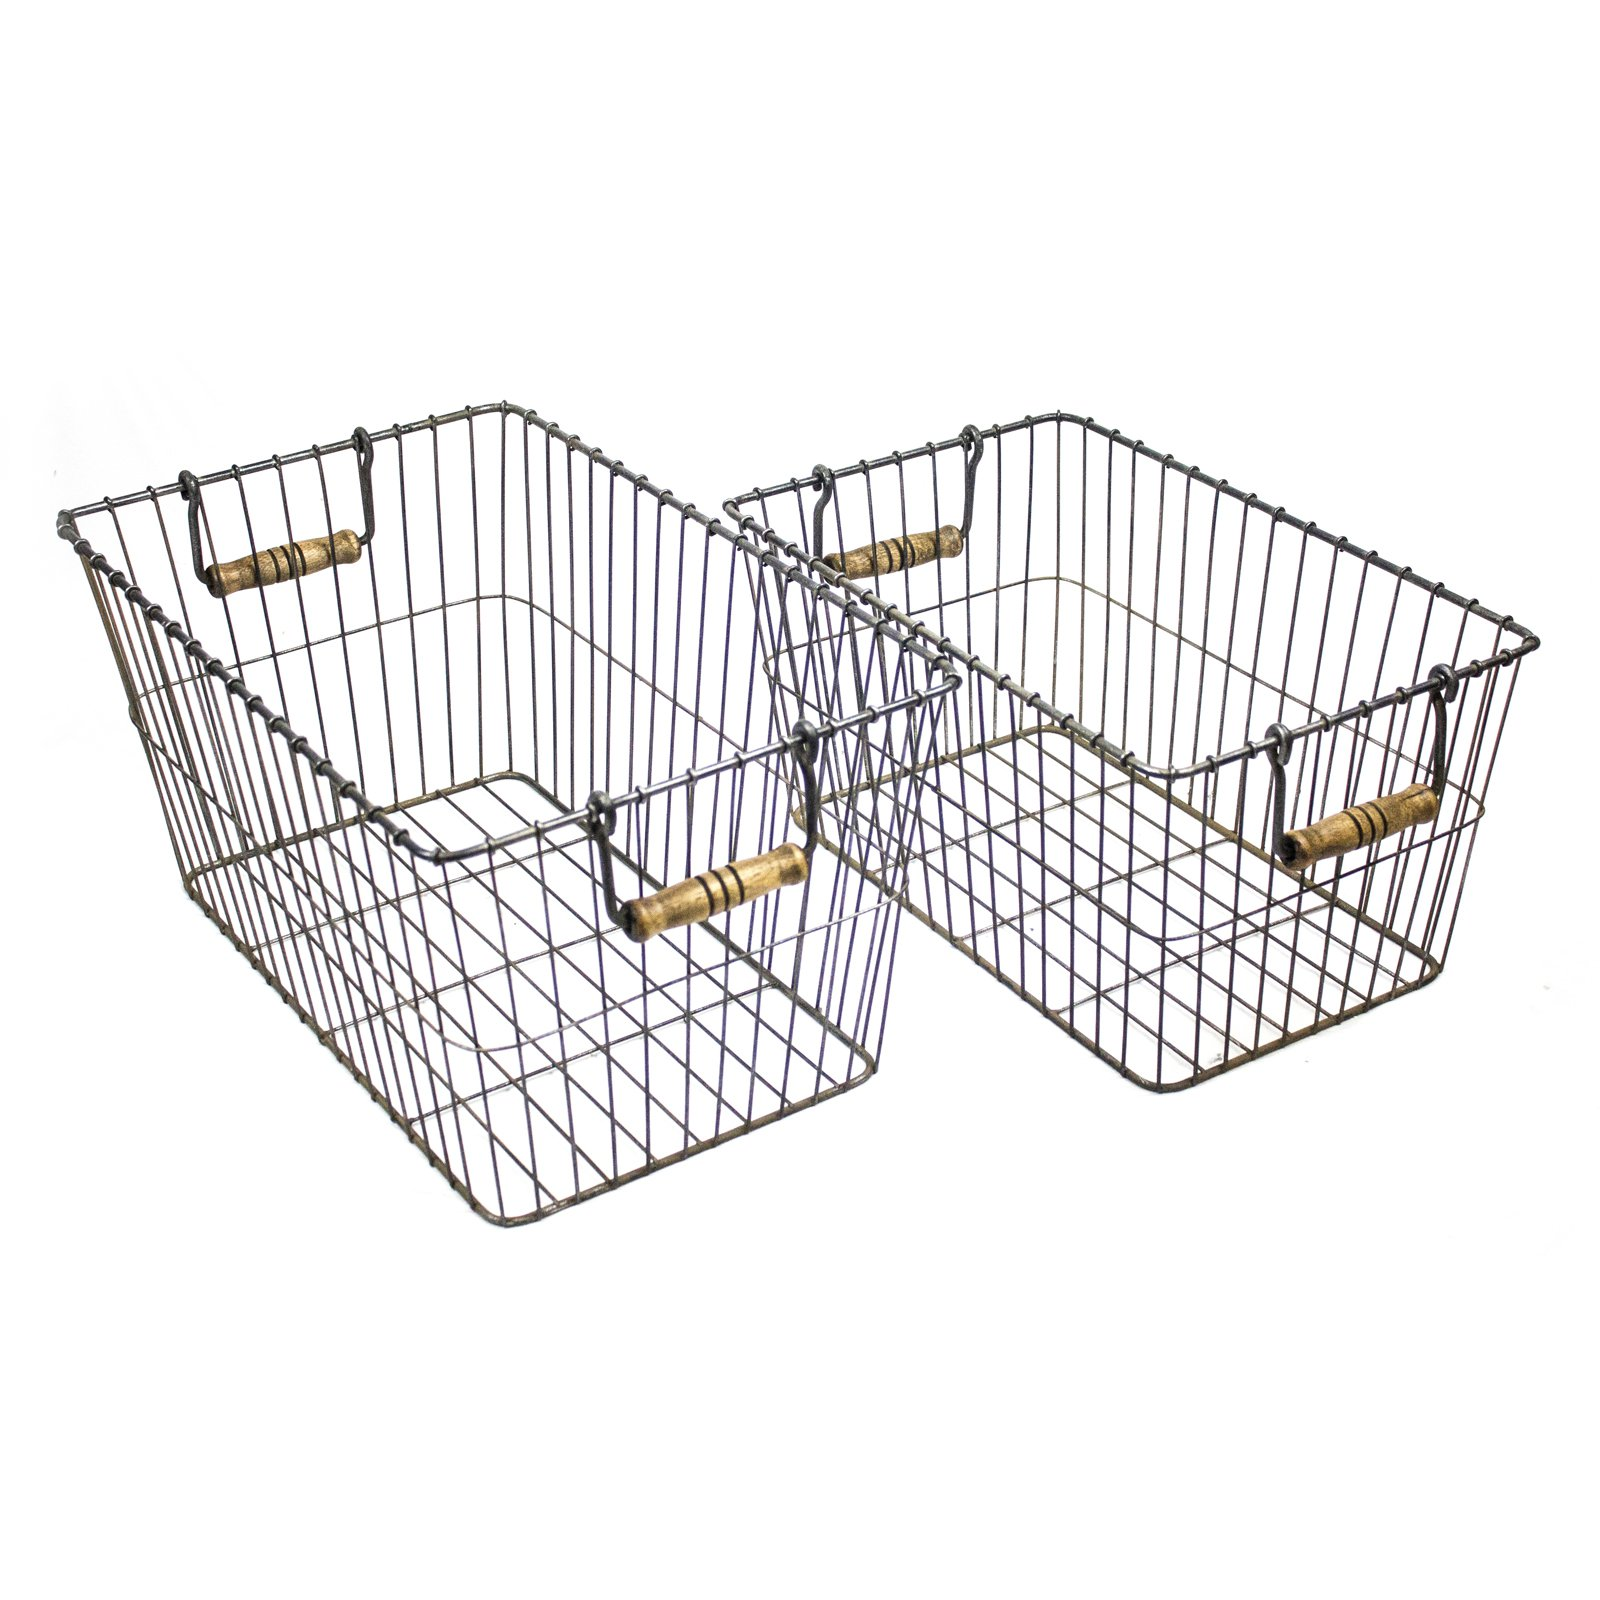 Sagebrook Home Rectangle Metal Baskets with Handle - Set of 2